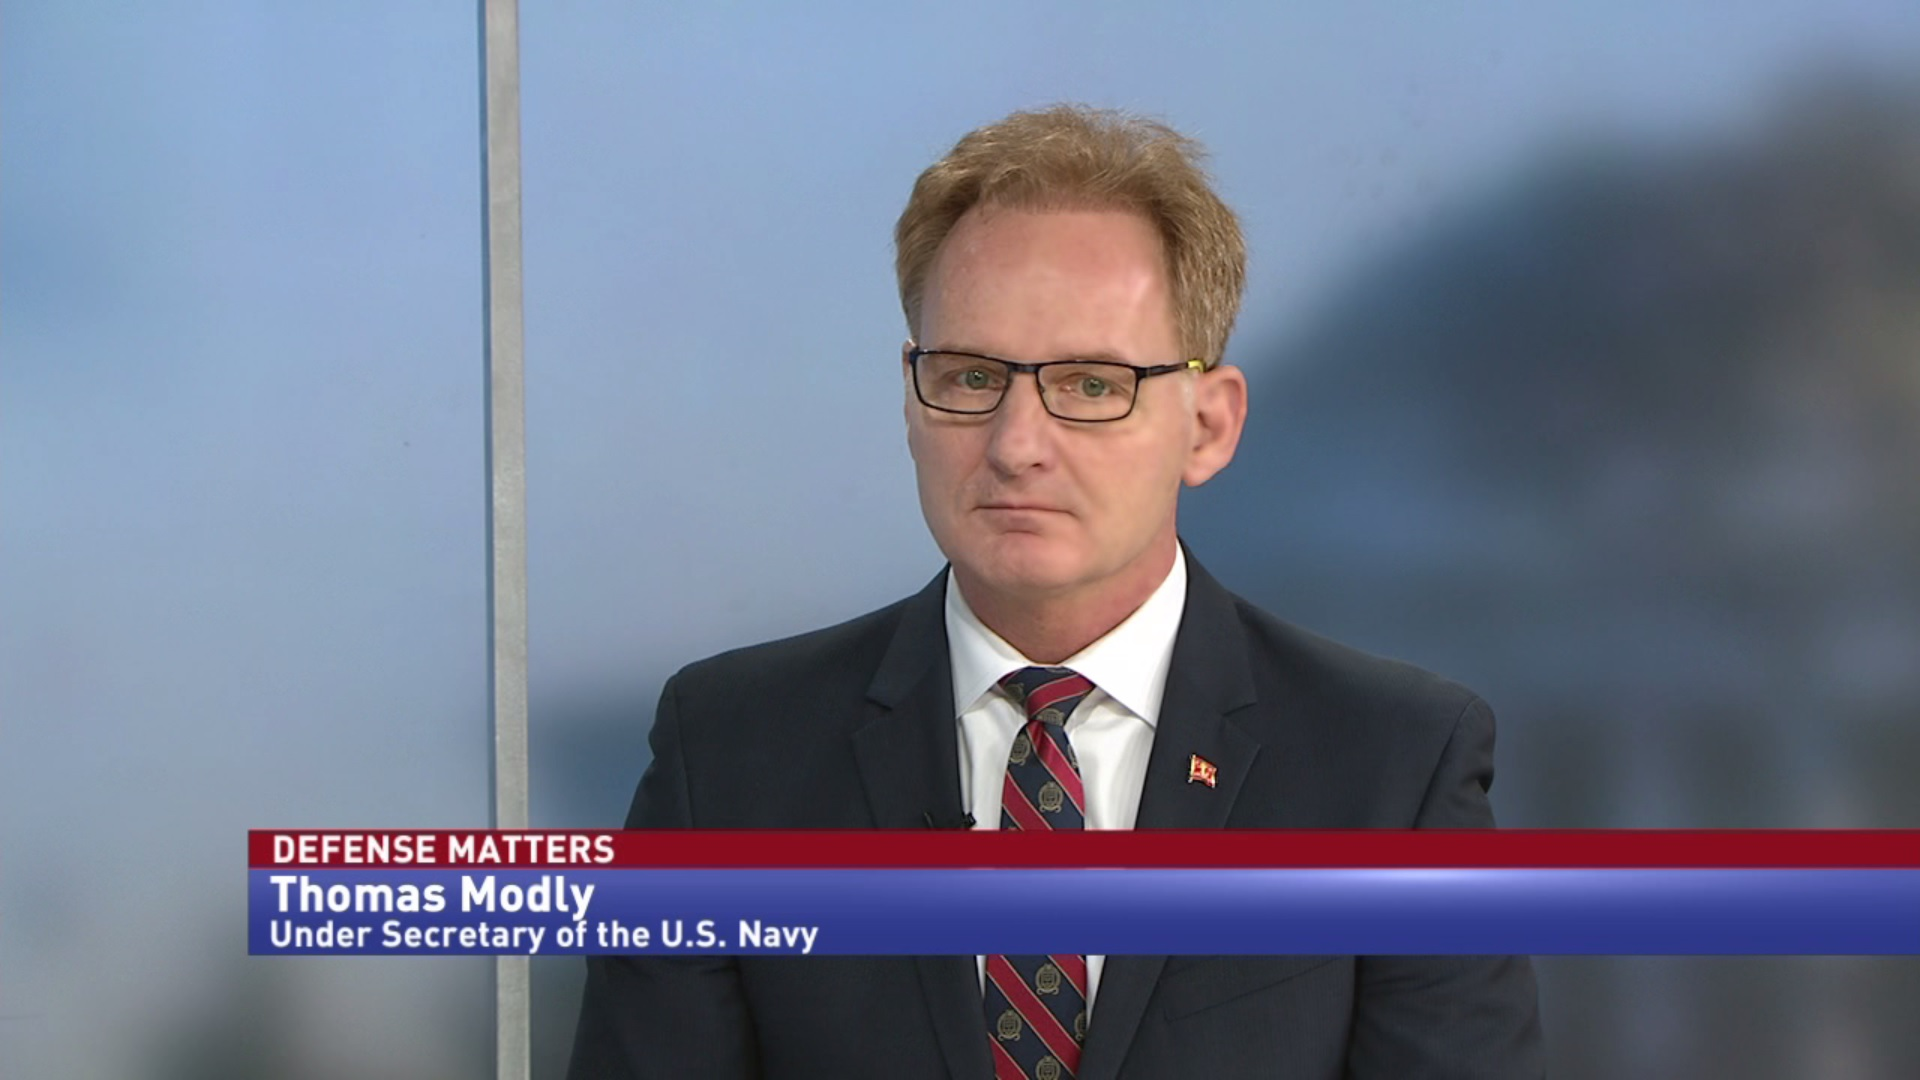 Navy reorganization aims to modernize business operations